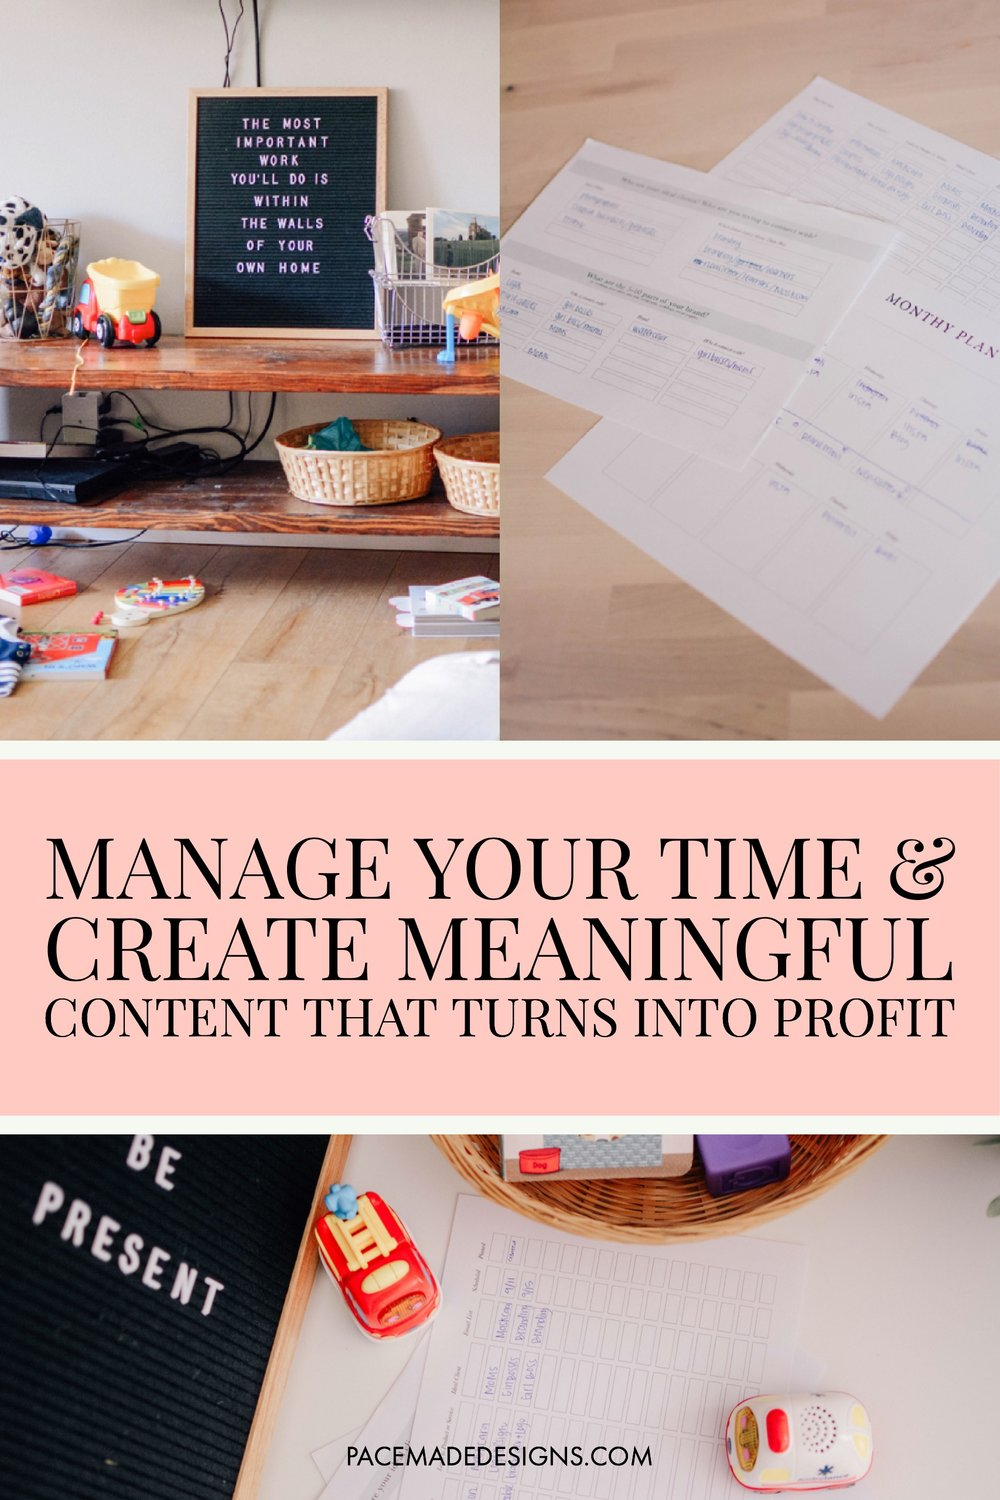 This content planner takes you through finding 5-10 parts of your brand that you share on Instagram. It walks you through finding your ideal client, and knowing which email list is for them.  Then it breaks down your post schedule. Mine is a brand email every other Tuesday, and a learner email every other Wednesday, Instagram everyday and Maskcara Monday.   And my favorite, FAVORITE part is the blog & month planner pages.   The blog page breaks down your blog idea, how it serves, who it serves, what email list it will be sent to, if it has been pinned and scheduled. I'm including mine which are completely filled out so you can get an idea of how this really will work for your business.